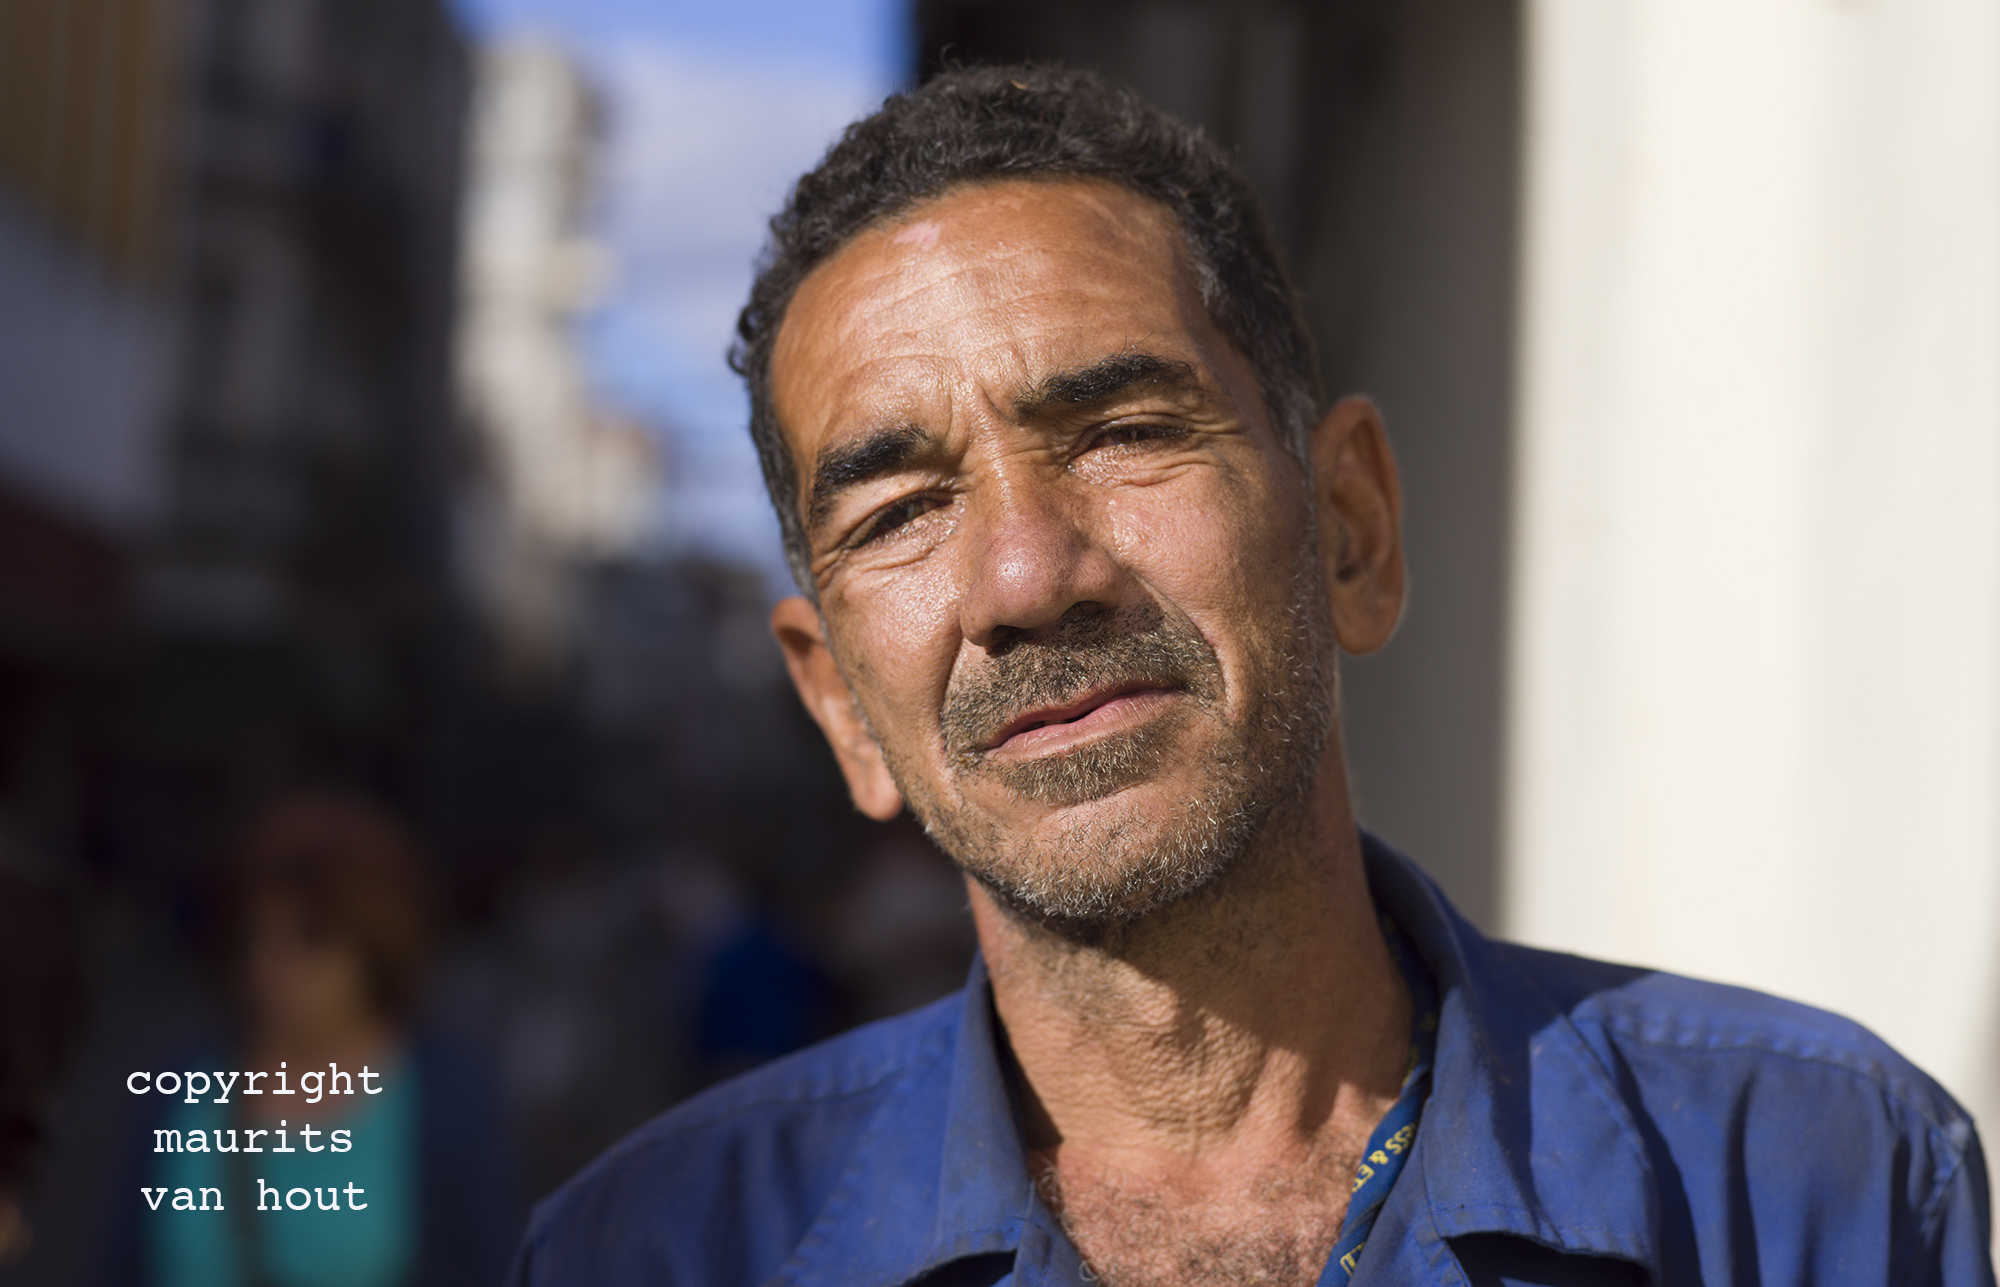 portrait of a man, Havana Cuba, by Dutch photographer Maurits van Hout